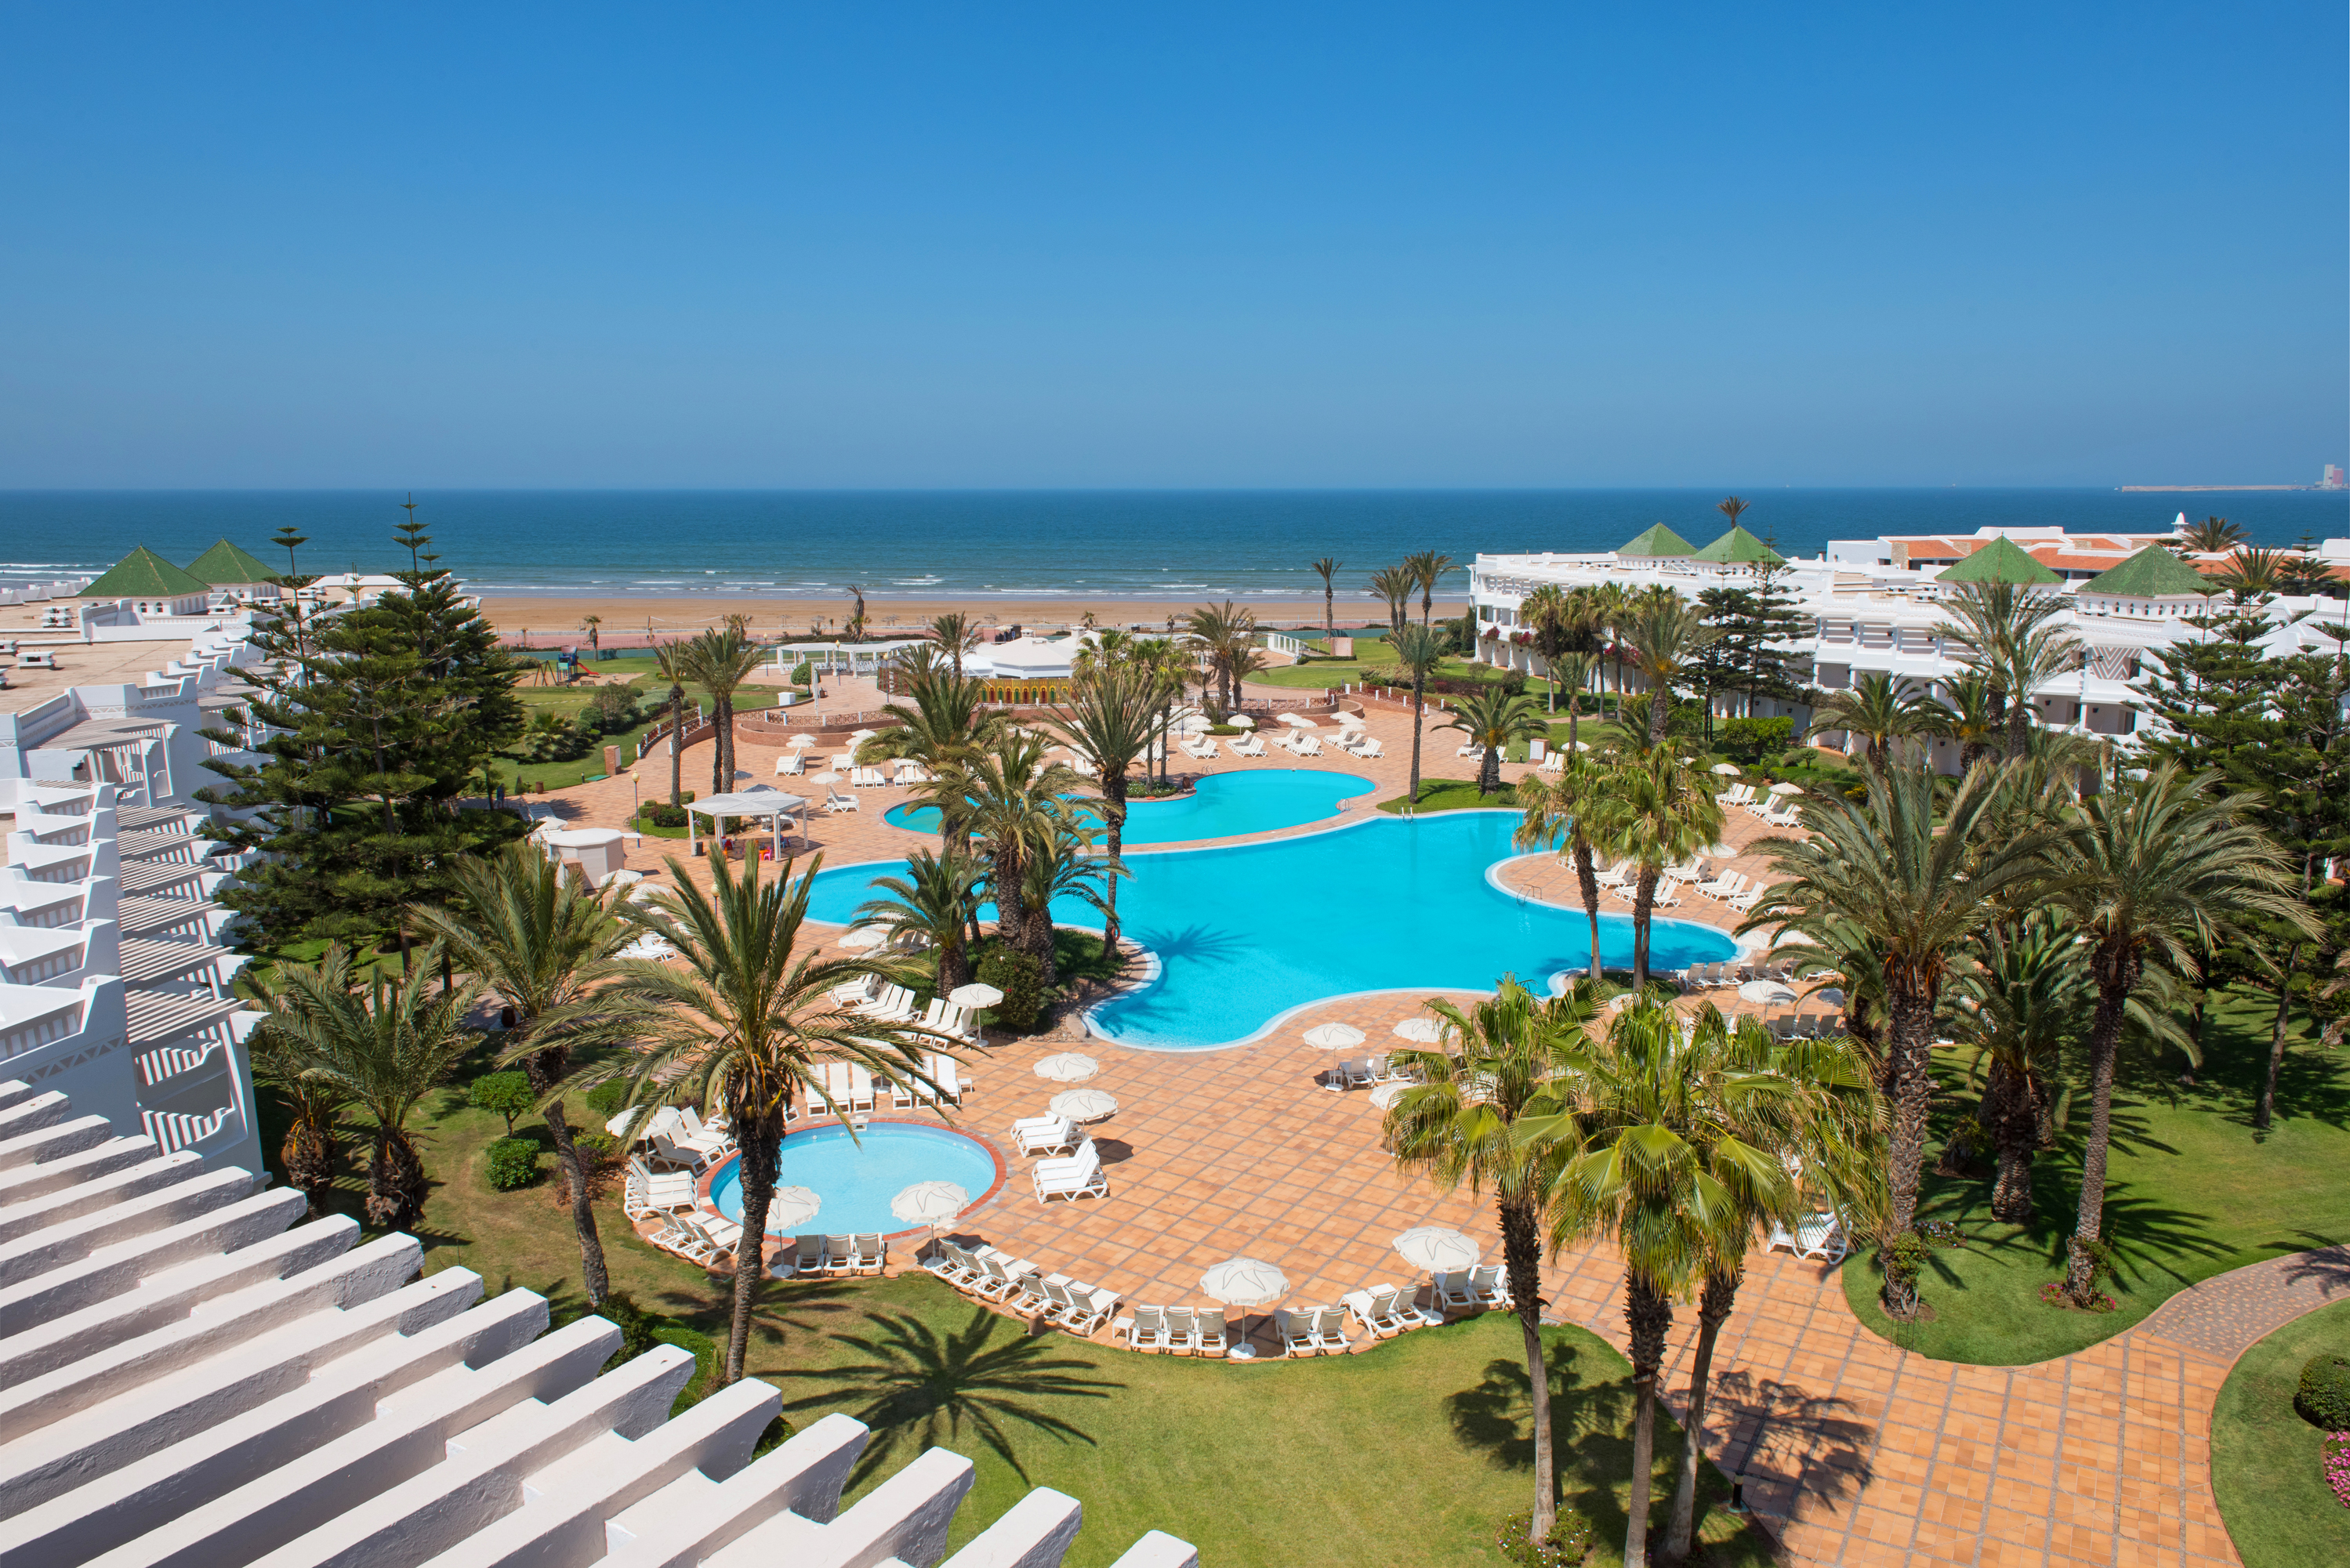 MAROKO - LATO 2019: Iberostar Founty Beach****, 8 dni (19-26.06.2019 r.), all inclusive: 2 + 1